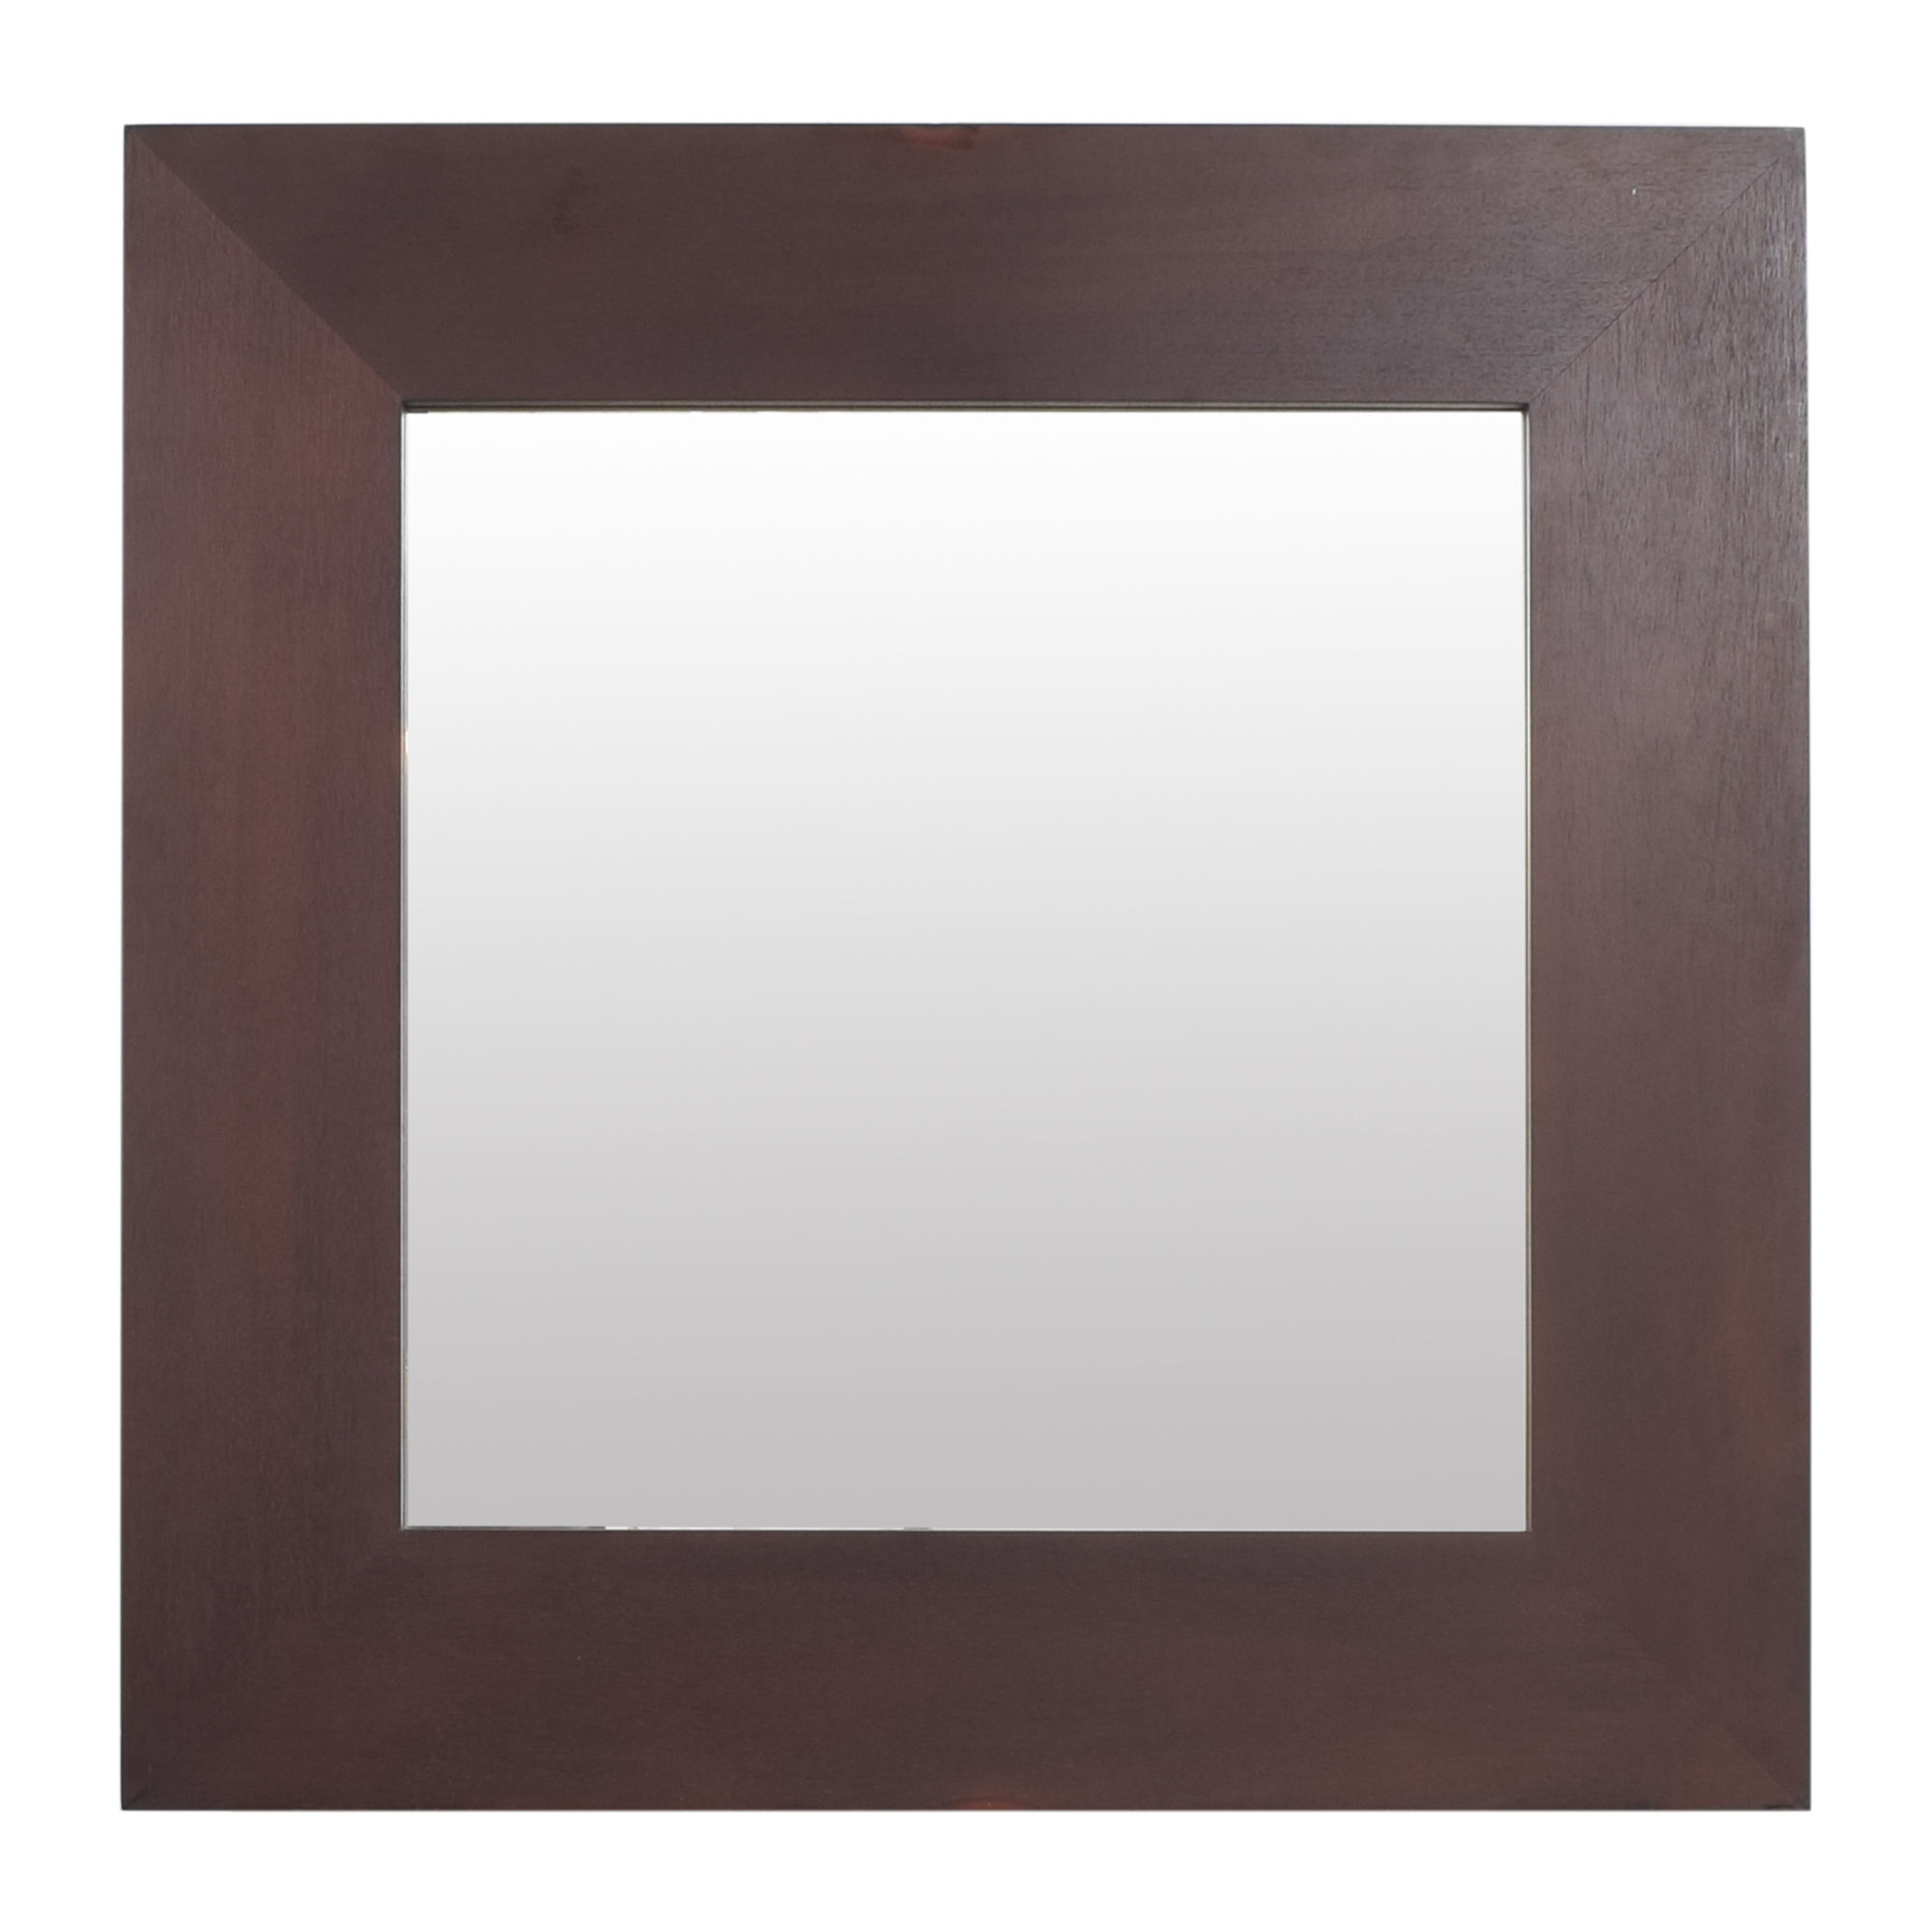 Square Framed Wall Mirror ma